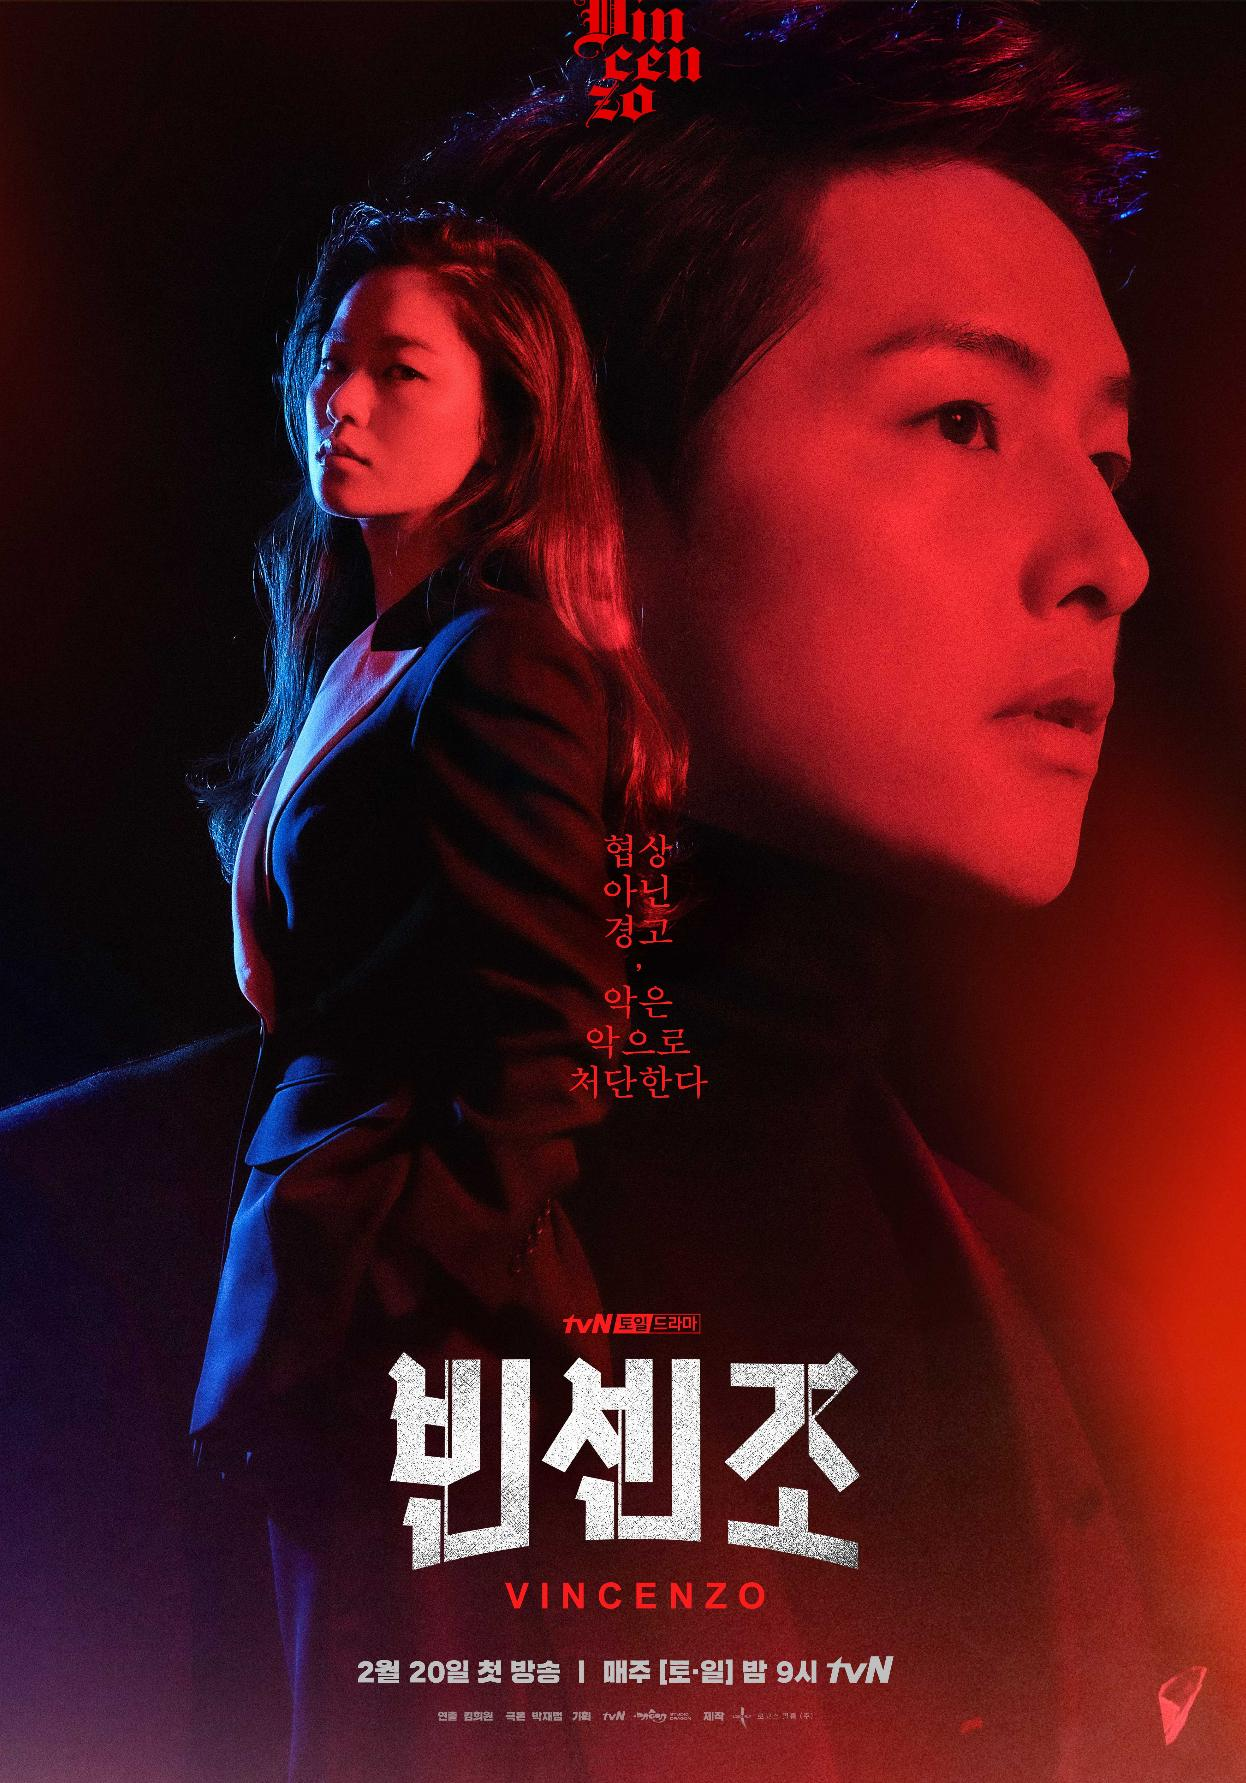 During a visit to his motherland, a Korean-Italian mafia lawyer gives an unrivaled conglomerate a taste of its own medicine with a side of justice.